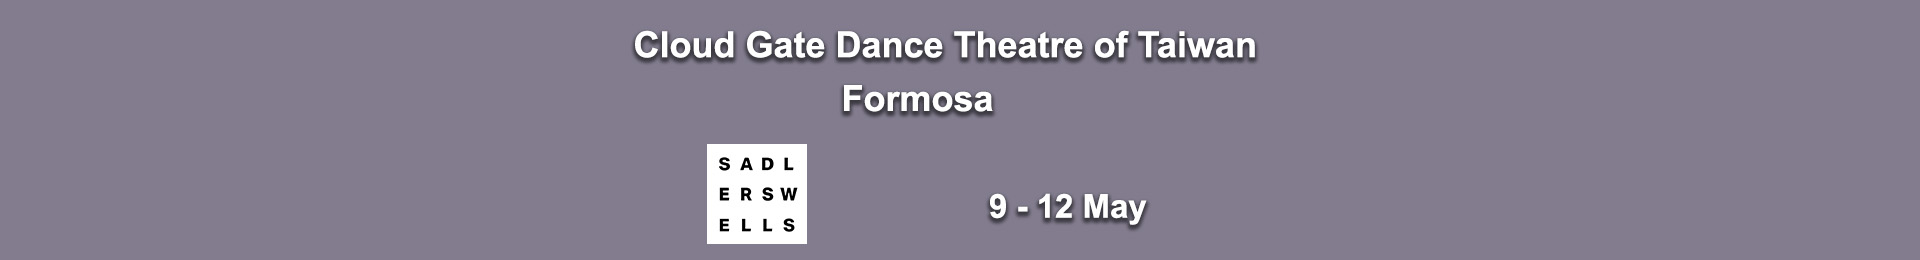 Cloud Gate Dance Theatre of Taiwan — Formosa